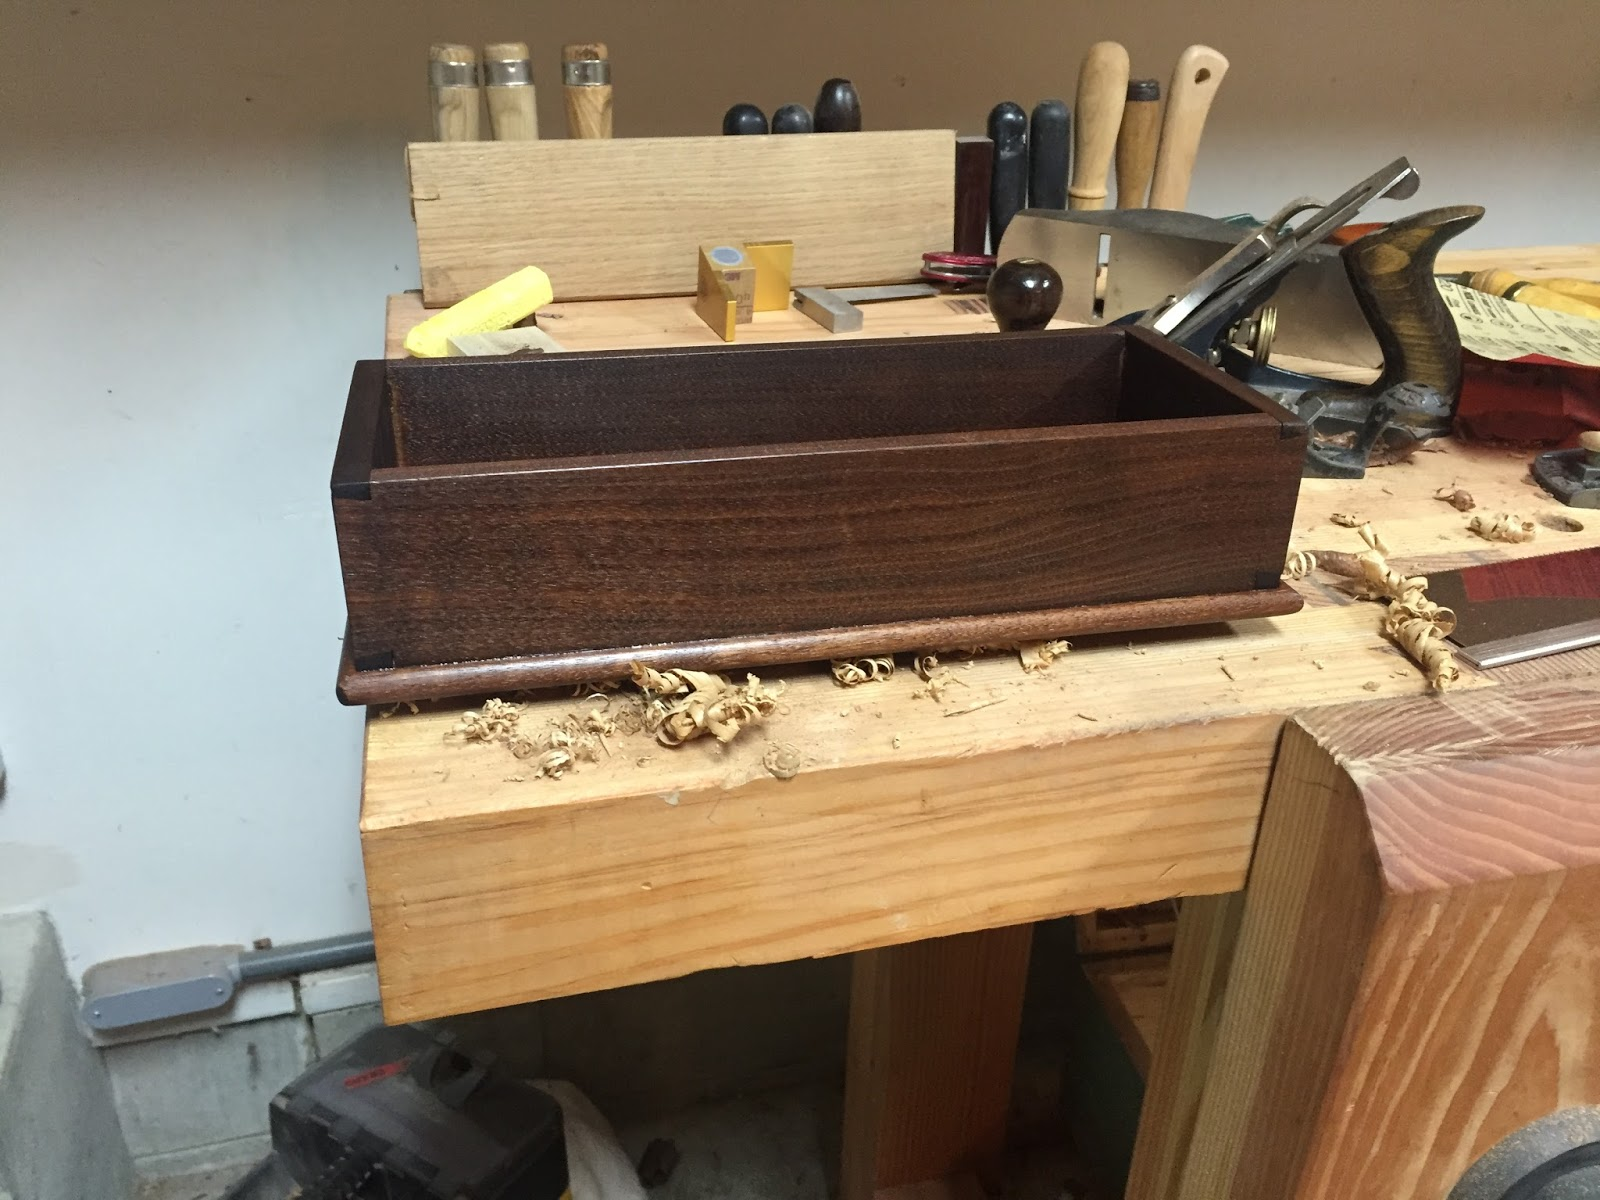 Nathan From Rochester In The US Sent Me These Pictures Of A Very Nice Paul  Sellers Box He Made. It Features A Single Large Dovetail On Each Corner And  Was ...